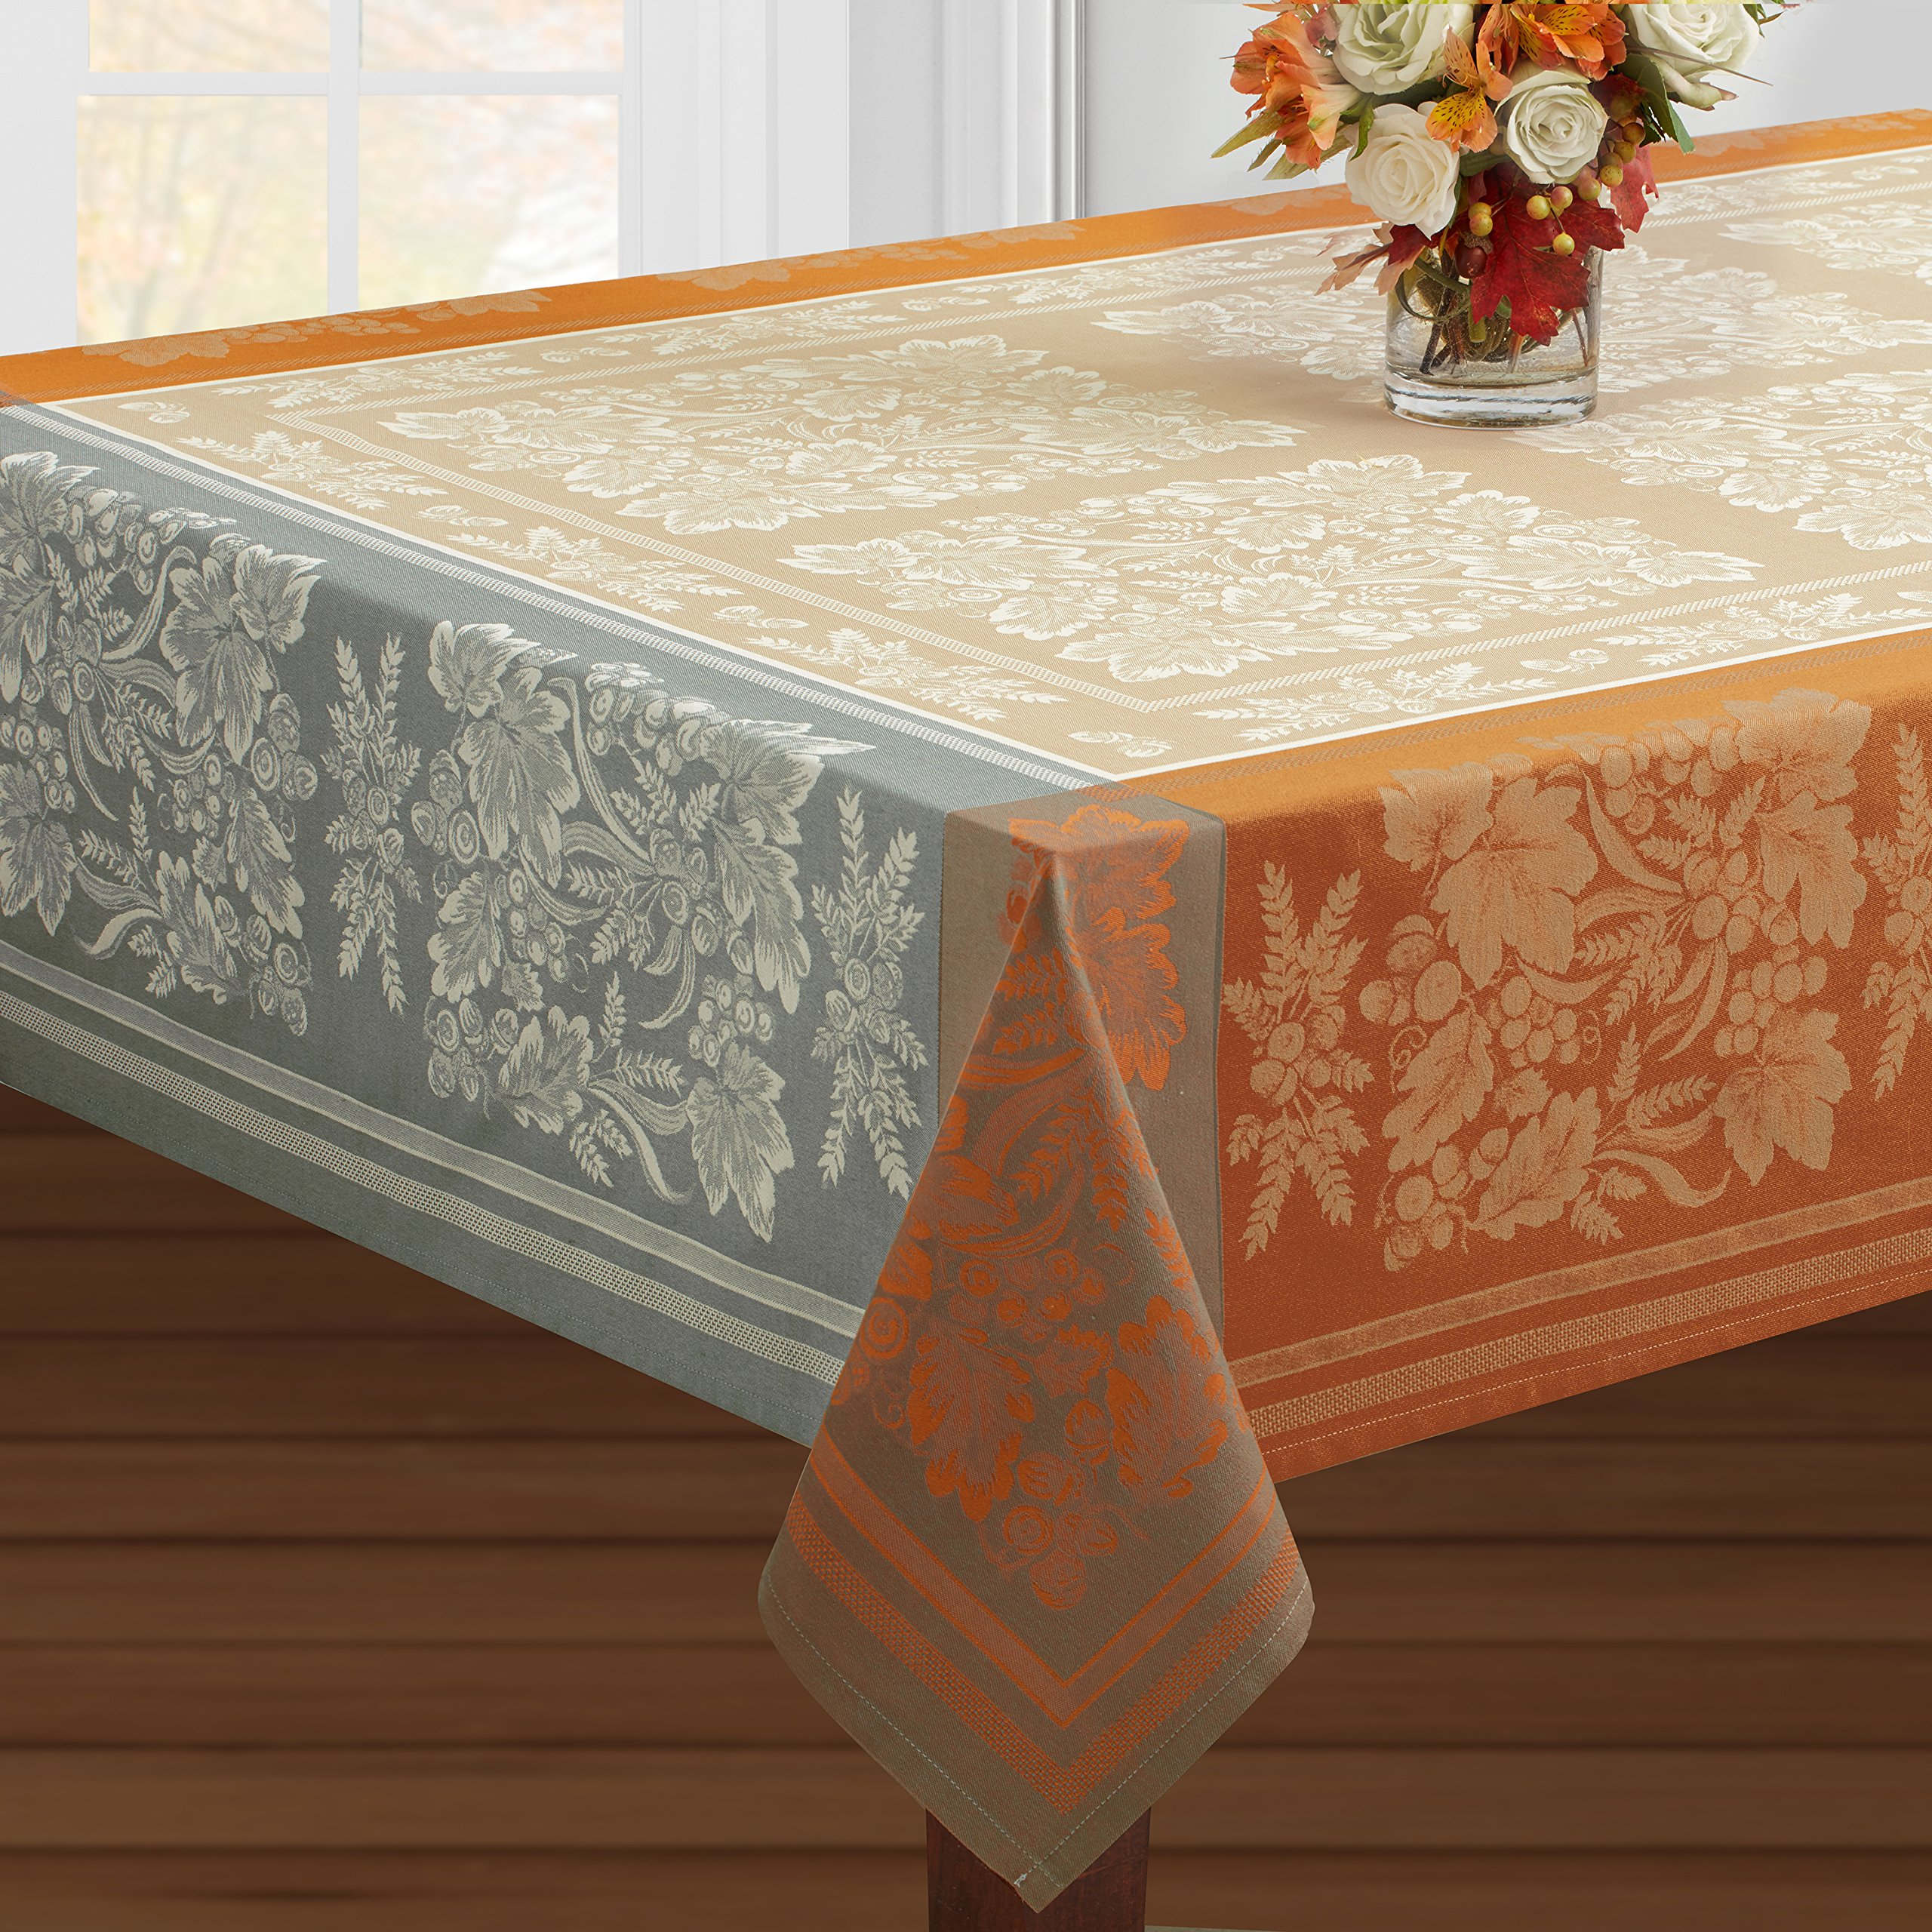 Benson Mills Gathering Engineered Jacquard Tablecloth (60'' X 120'' Rectangular, Taupe) For Harvest, Fall and Thanksgiving by Benson Mills